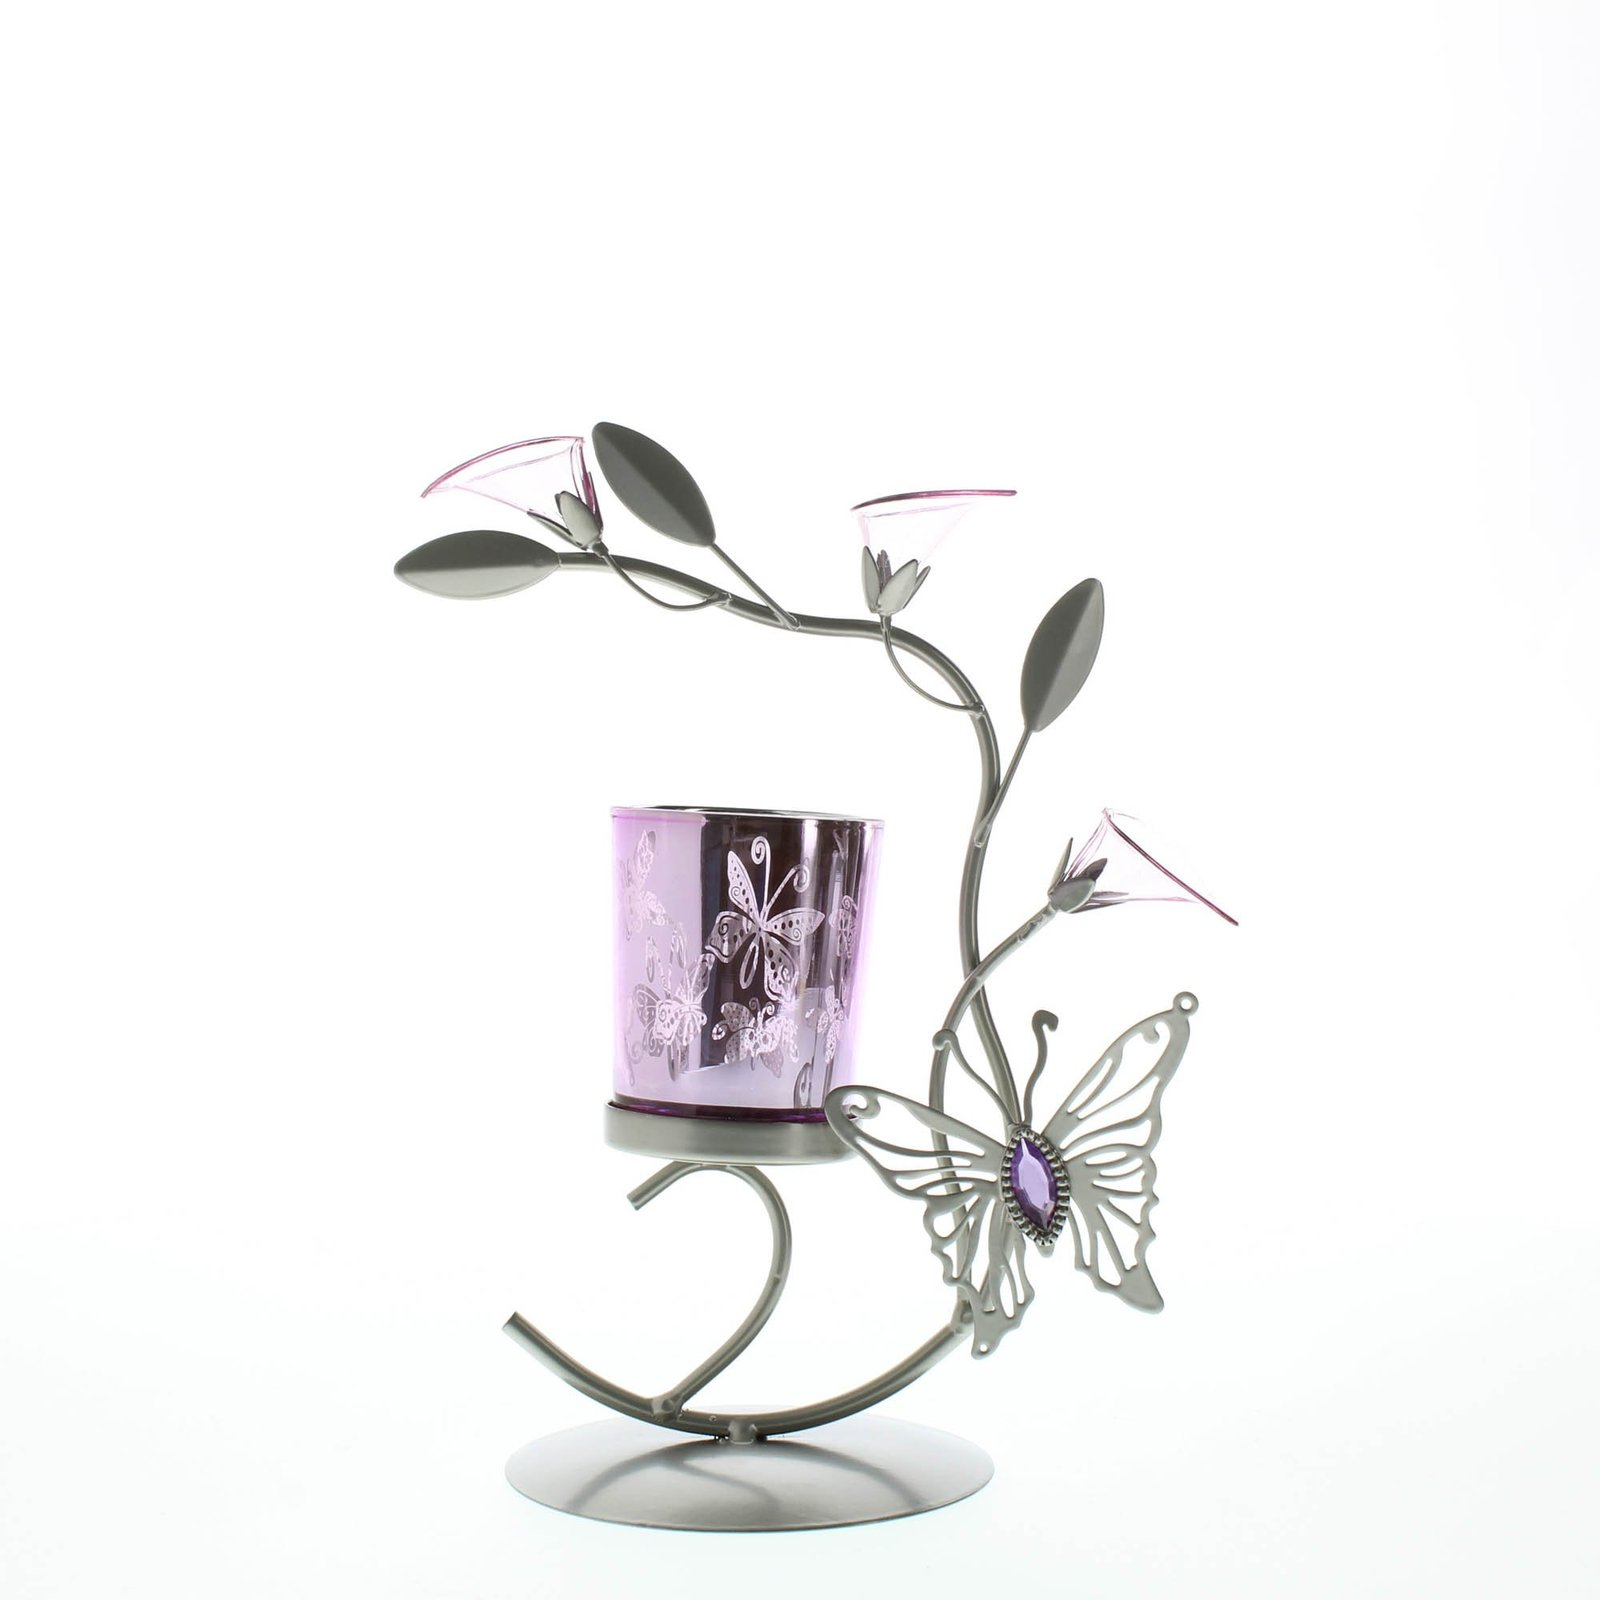 Candle Holders Flower, Colored Decorative Candle Holder Metal - Butterfly Lily image 4